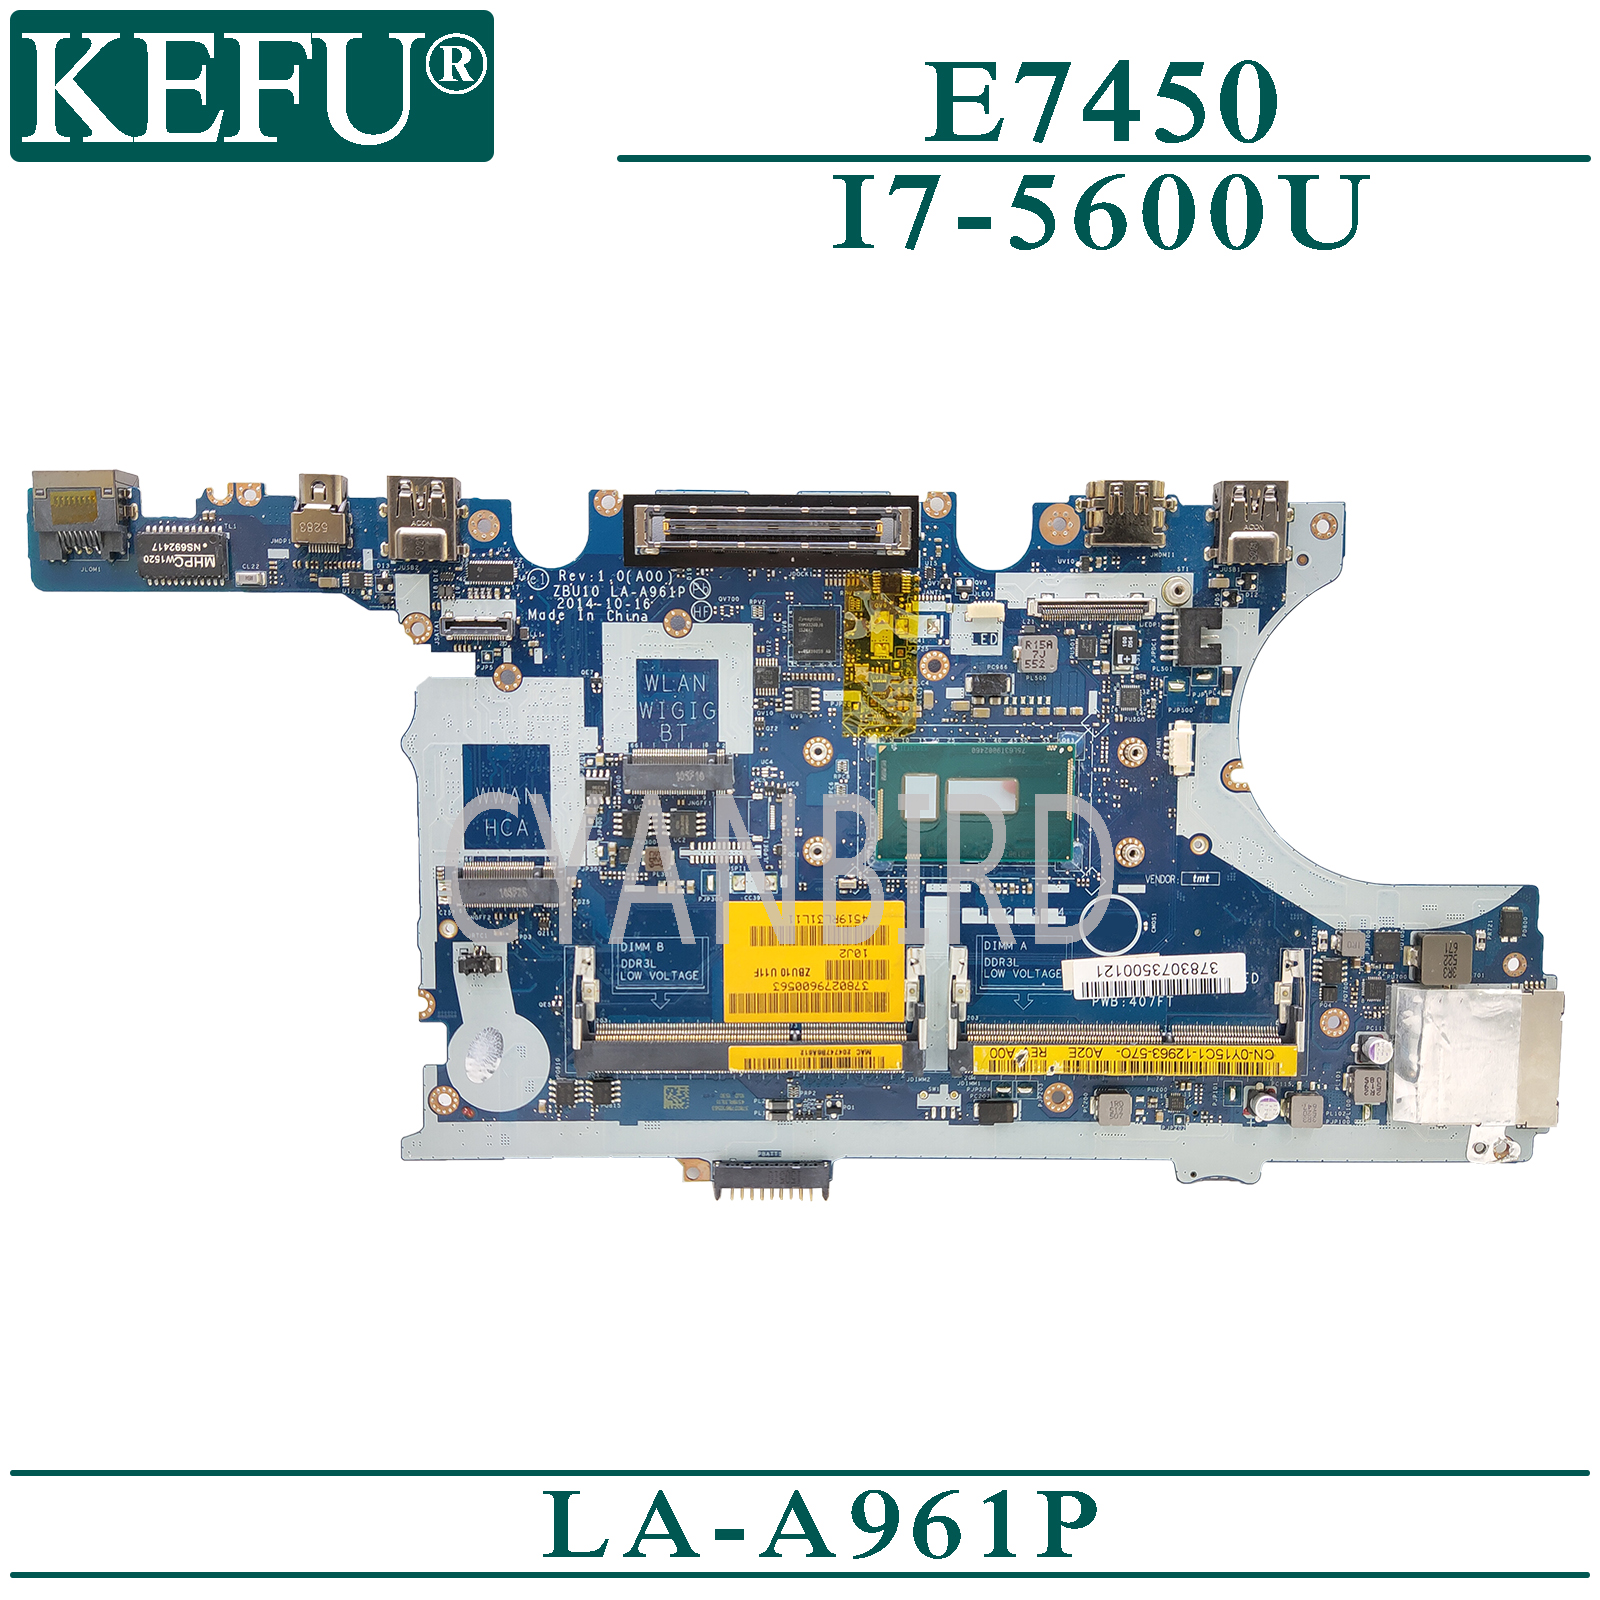 KEFU LA-A961P original mainboard for Dell Latitude E7450 with <font><b>I7</b></font>-<font><b>5600U</b></font> Laptop motherboard image